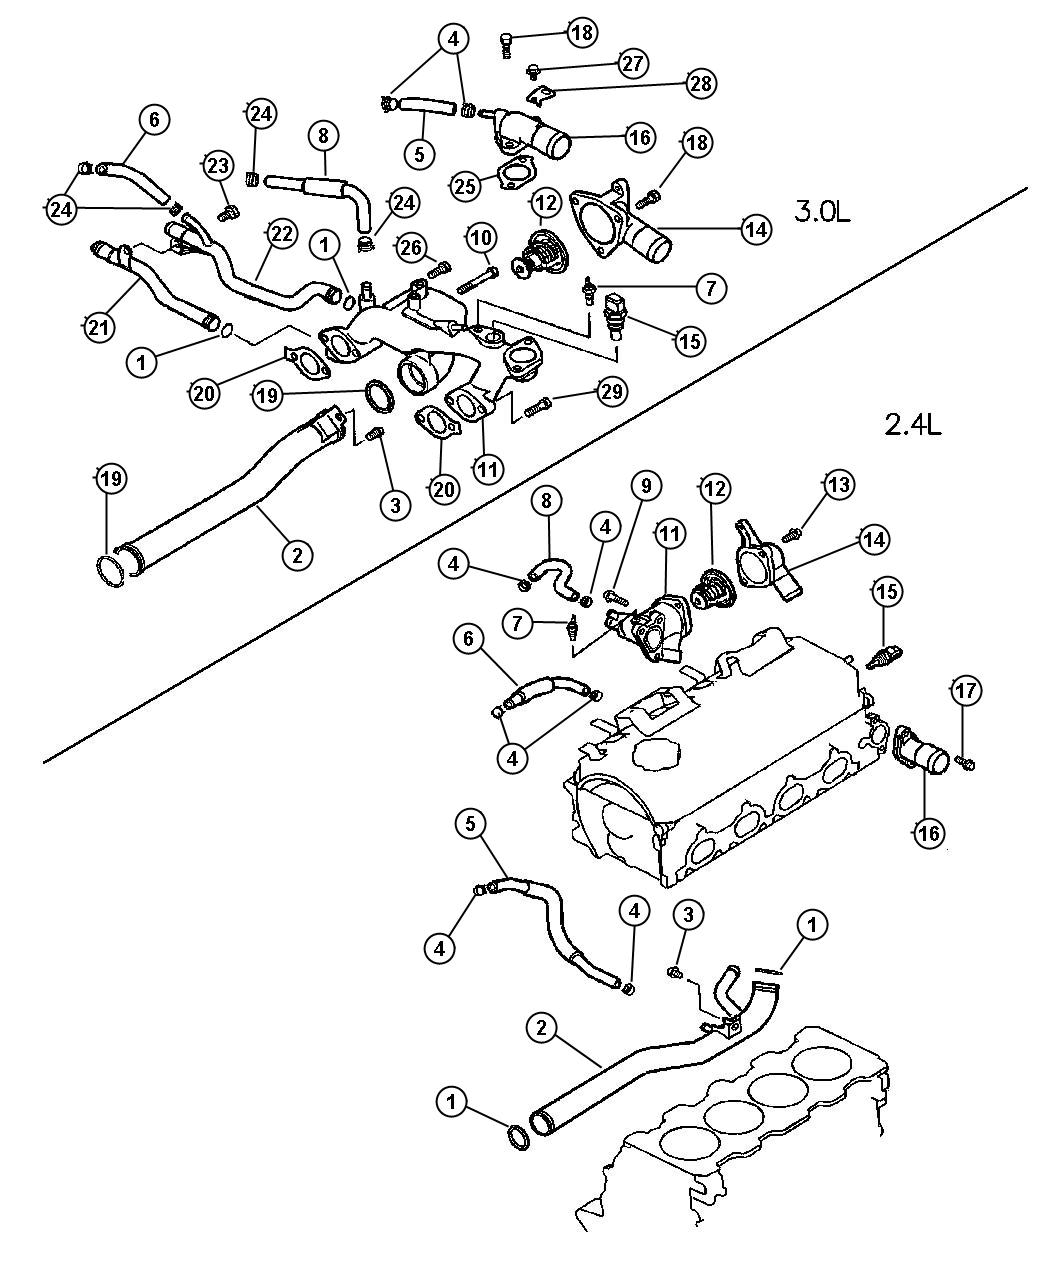 Thermostat and Related Parts